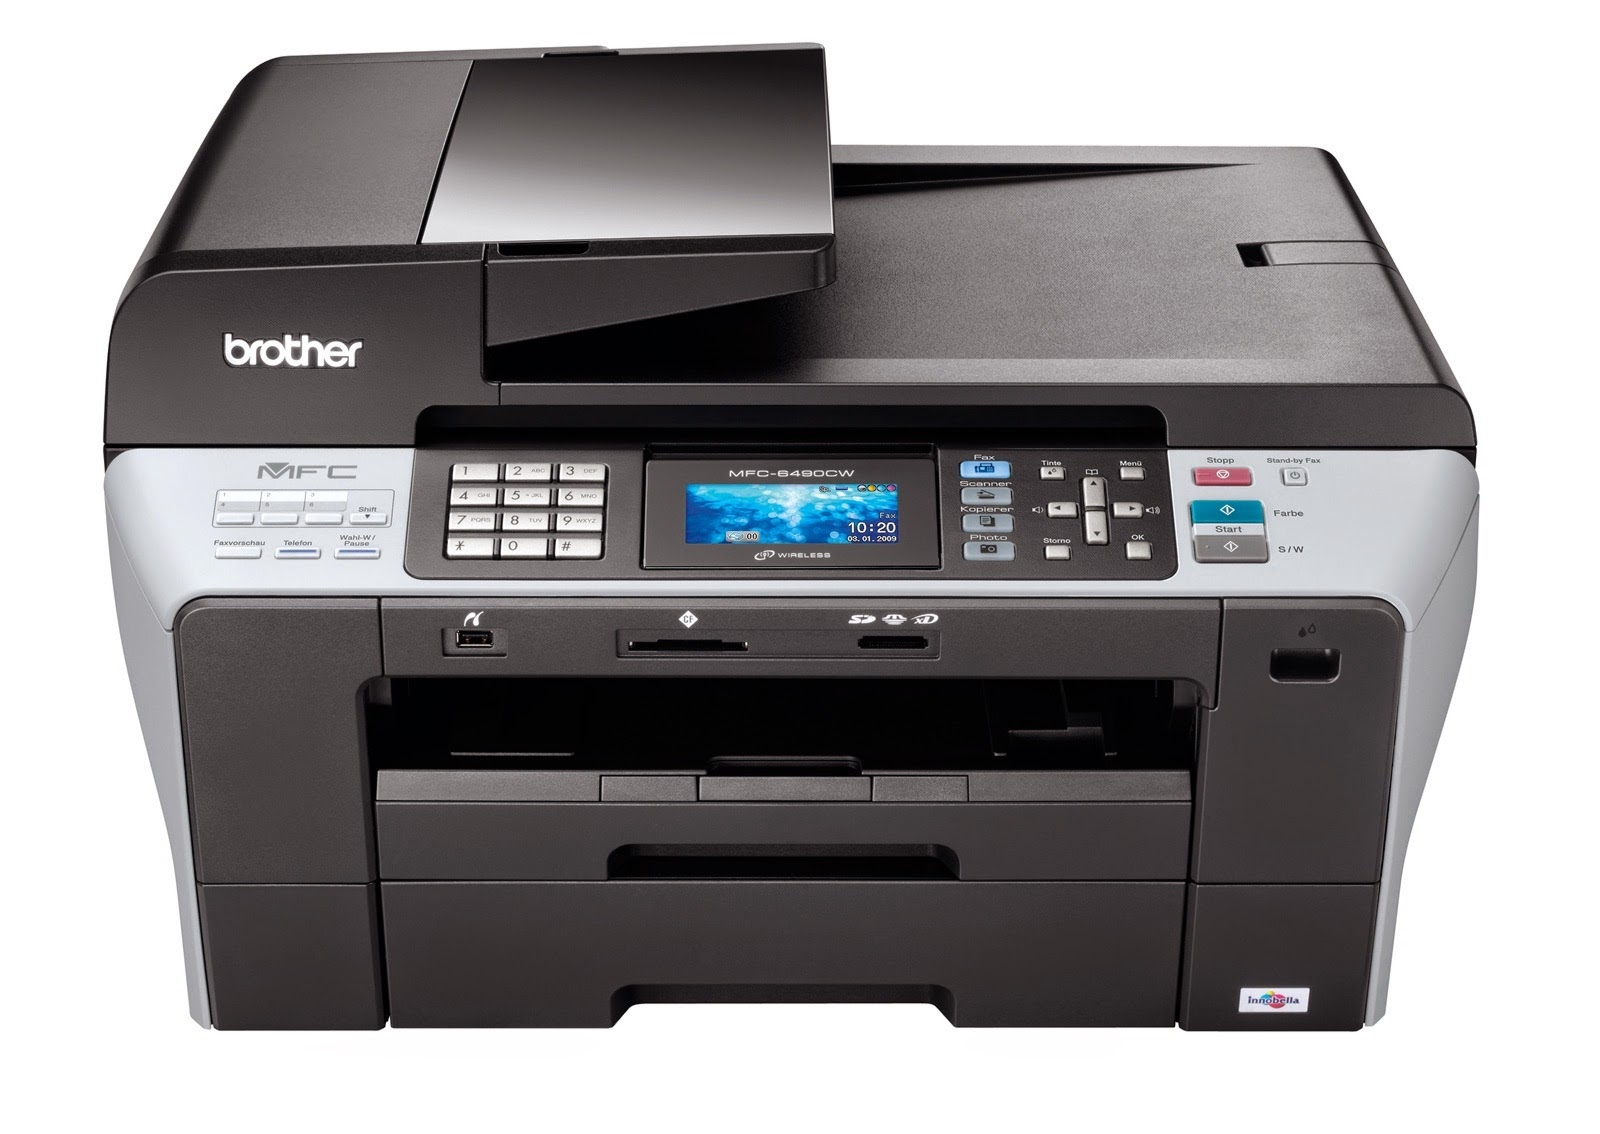 Printer Driver For Brother Mfc6490cw